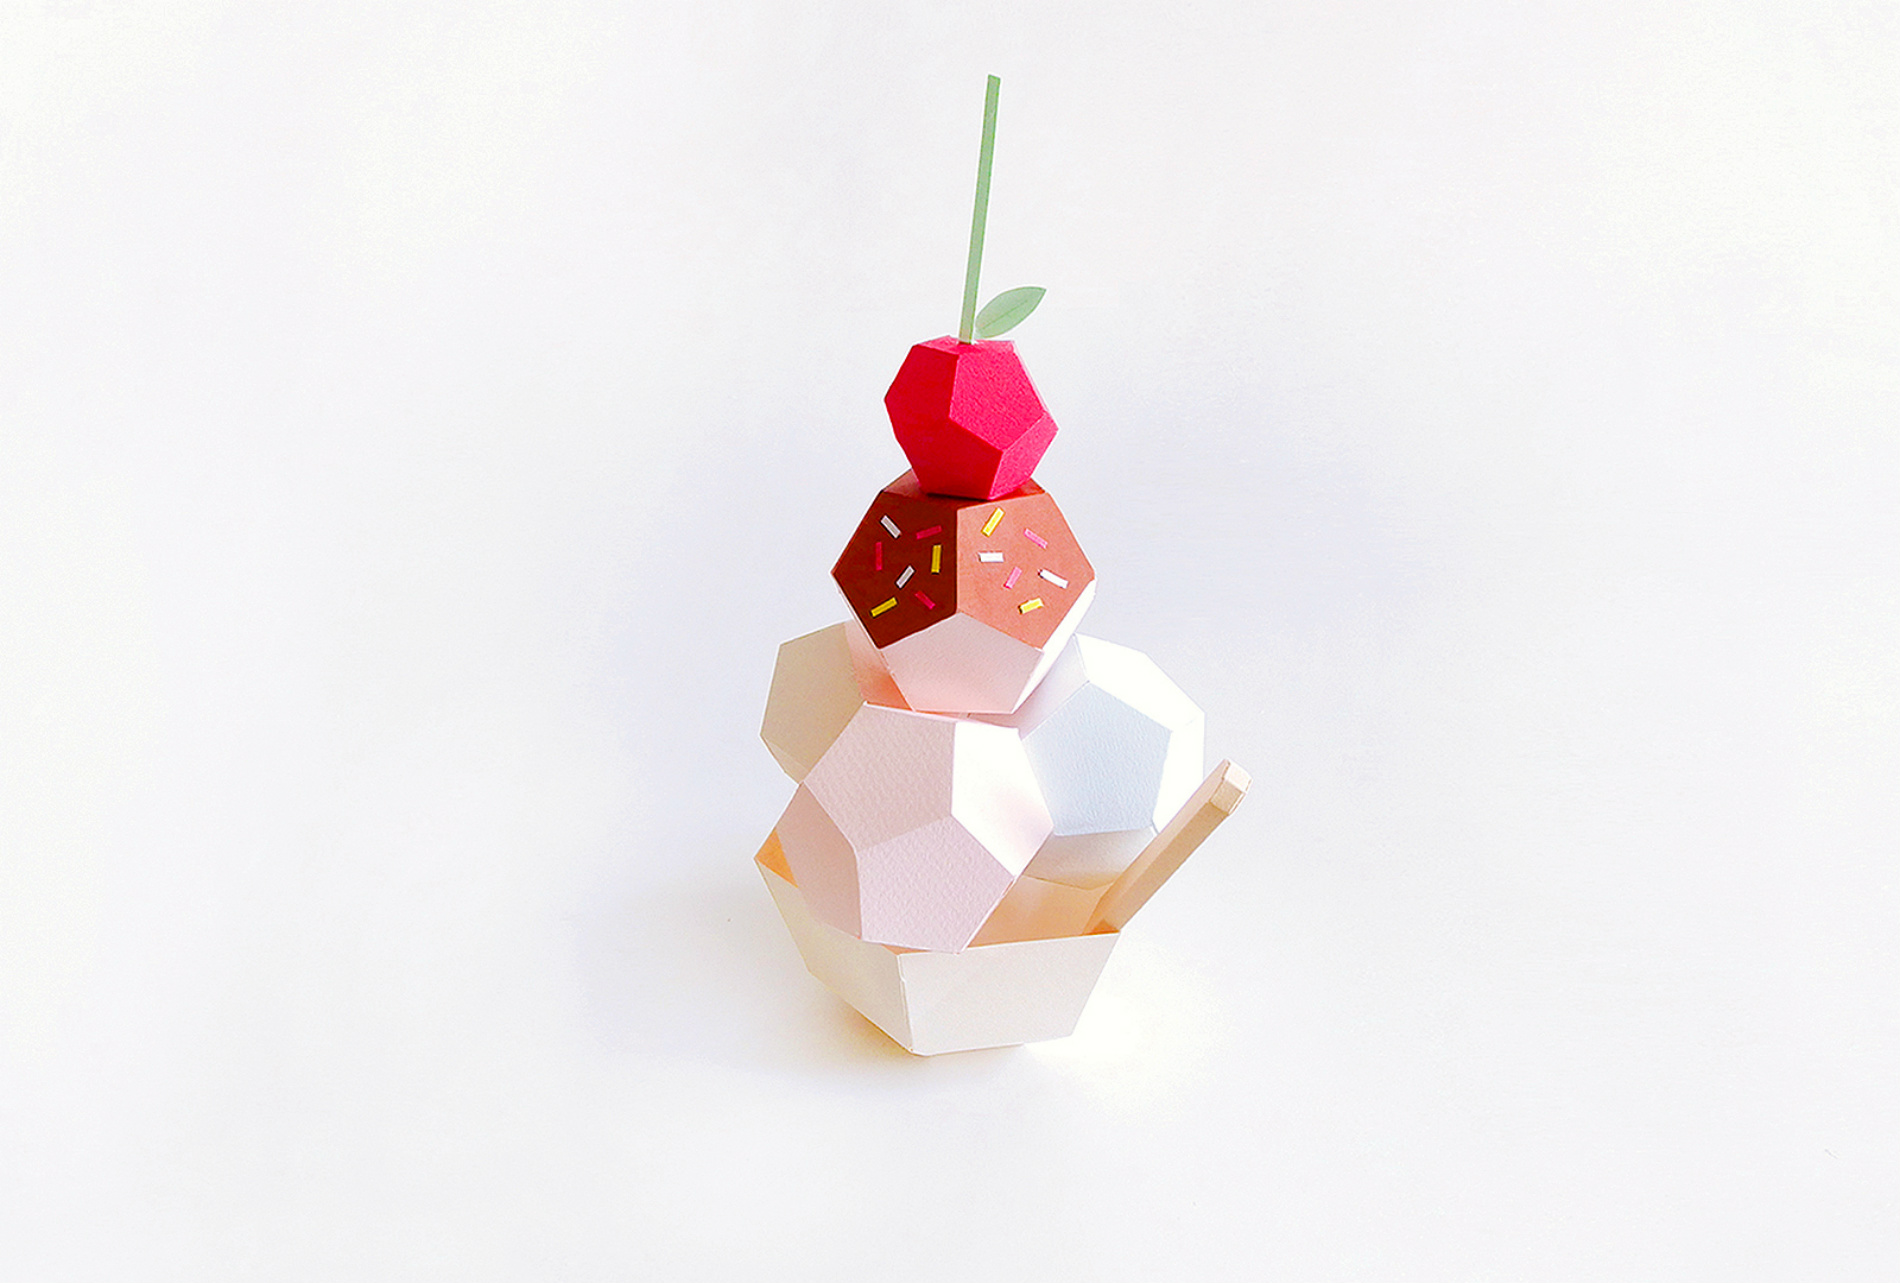 Fun Paper Sculptures of Desserts